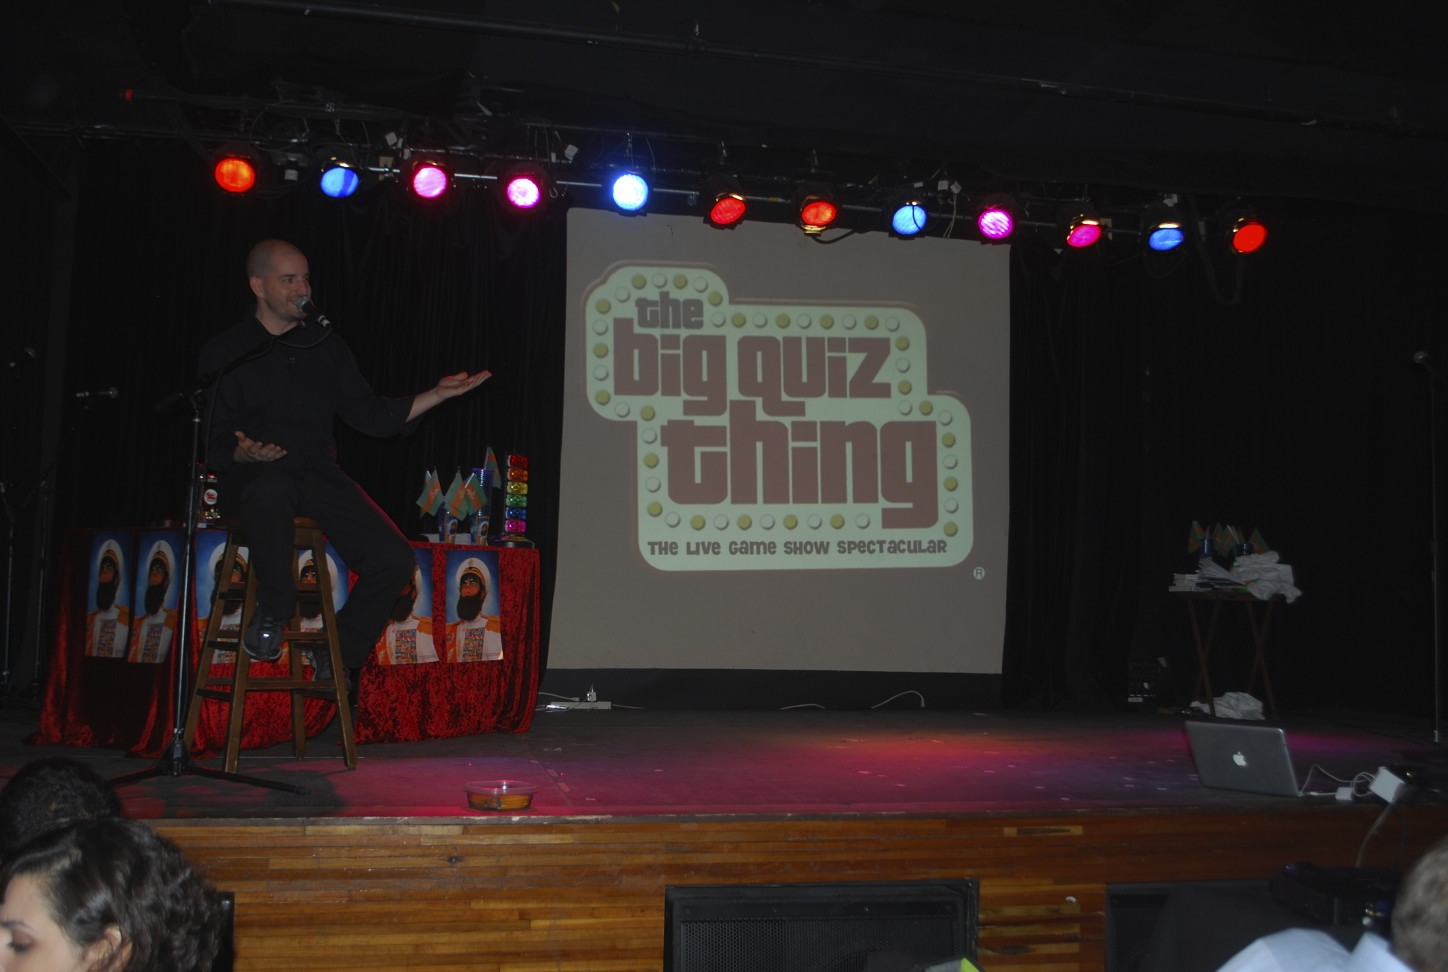 69a7eb8d045 And now we have photo proof  One of our sponsors from last Tuesday s quiz